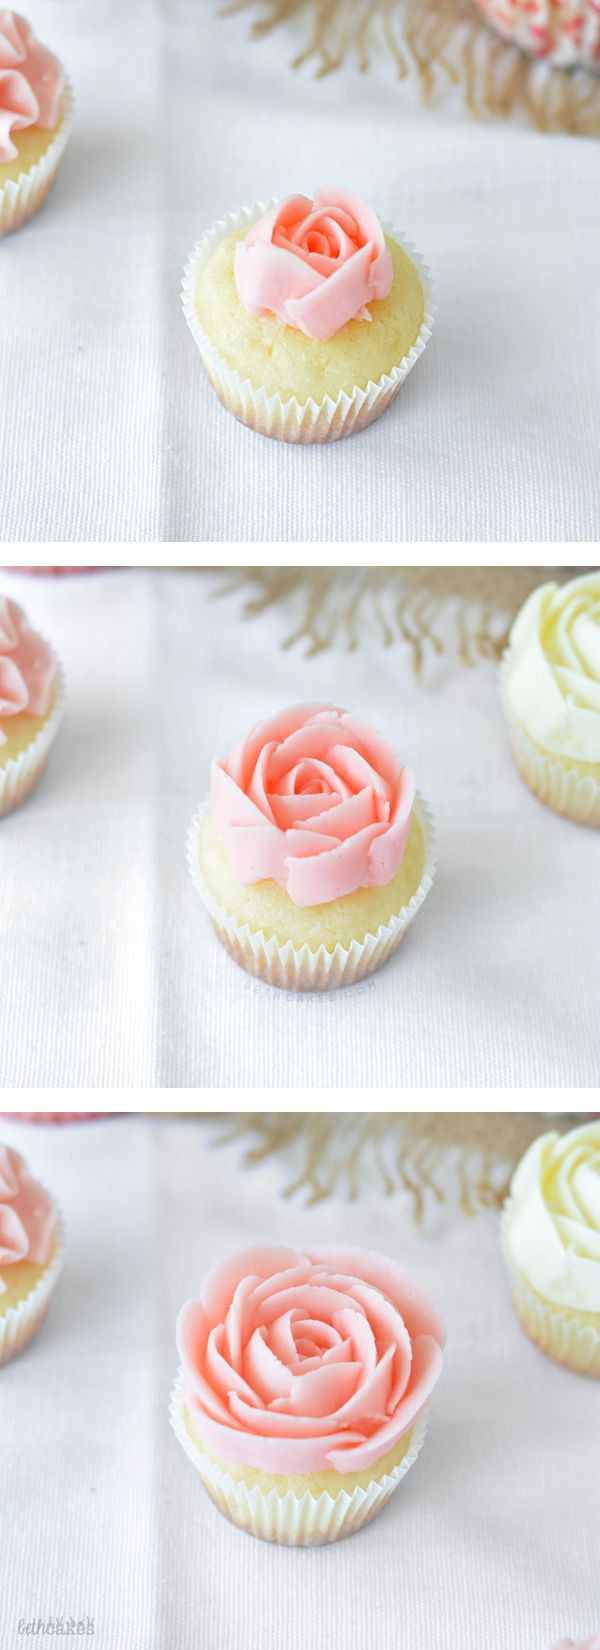 Wedding-themed Rose Cupcakes! bethcakes.com